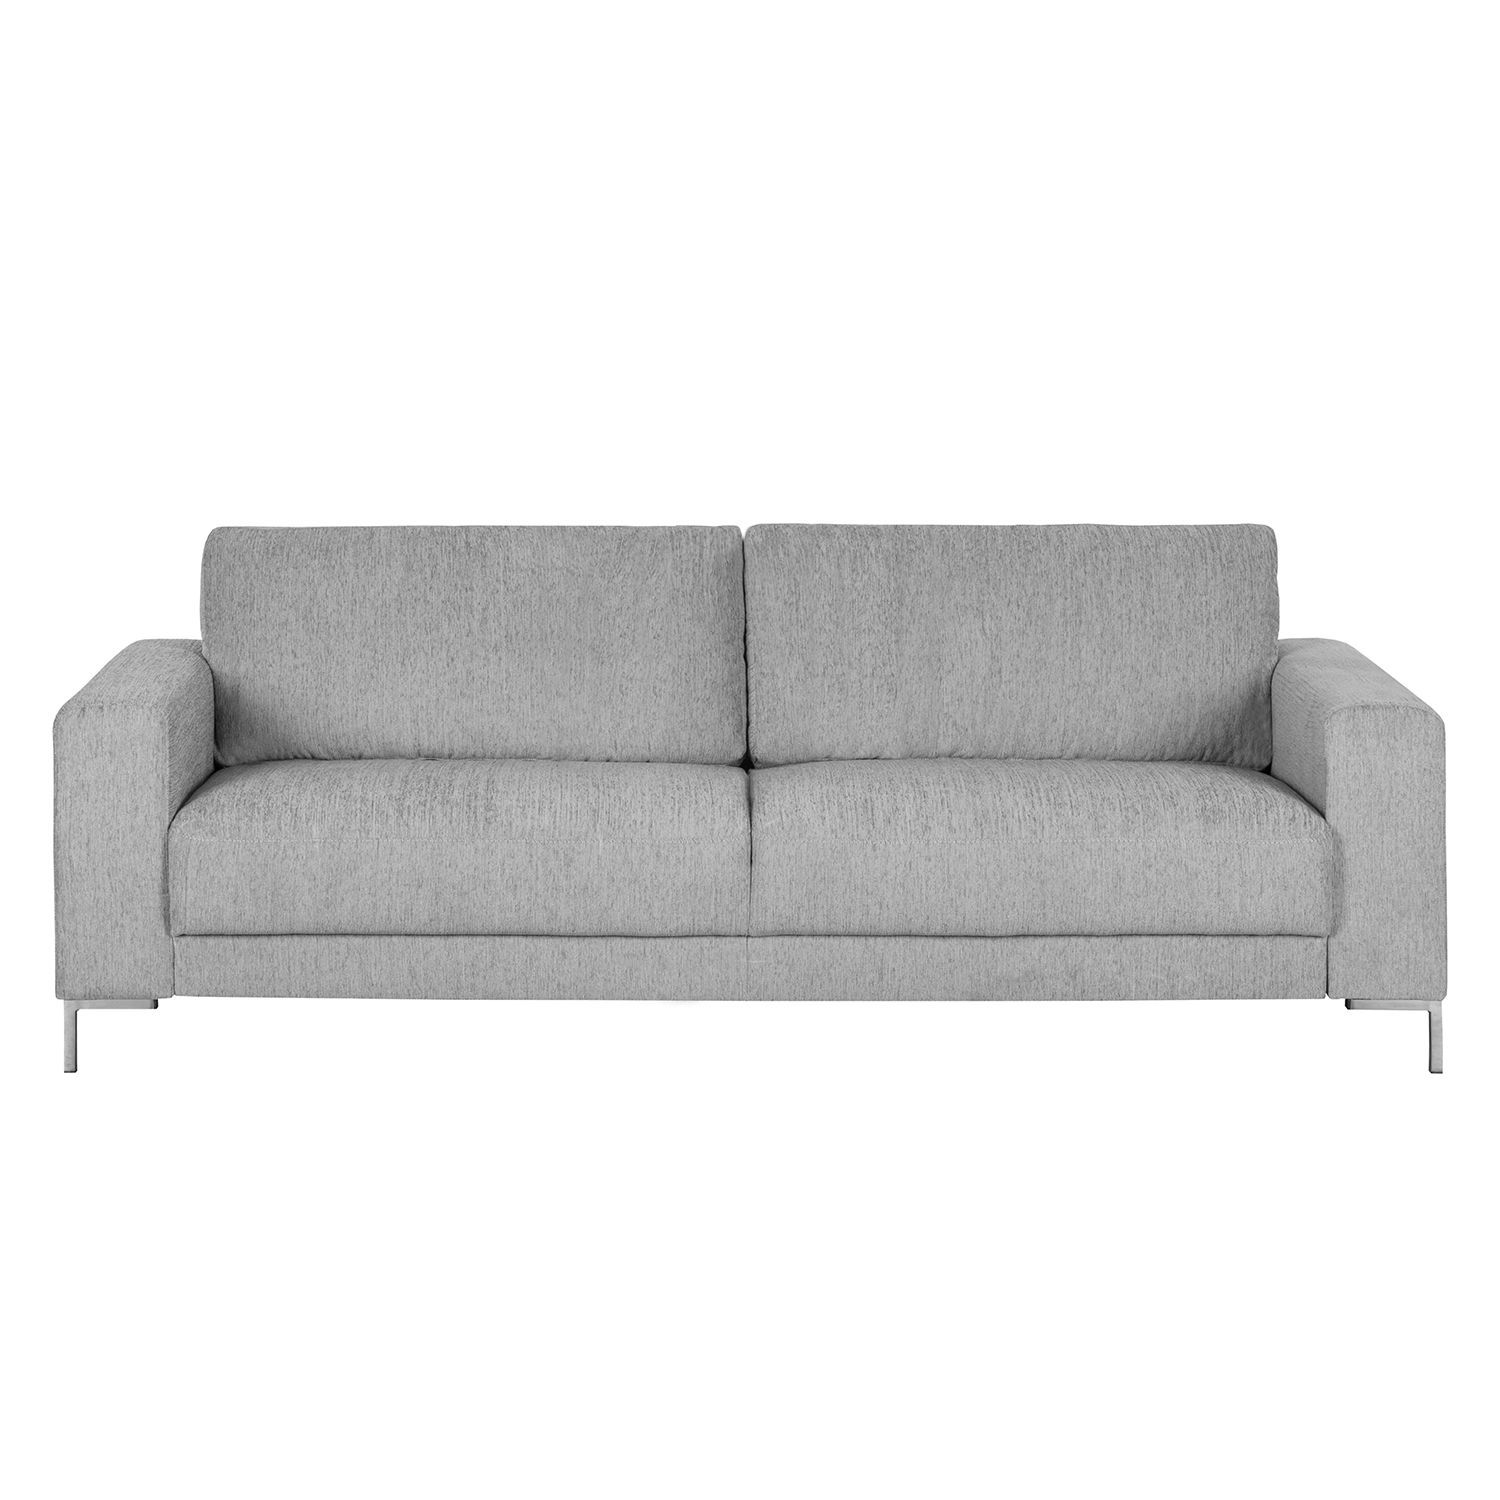 Sofa Summer I 3 Sitzer Sofa Sofa Mit Relaxfunktion Sofas